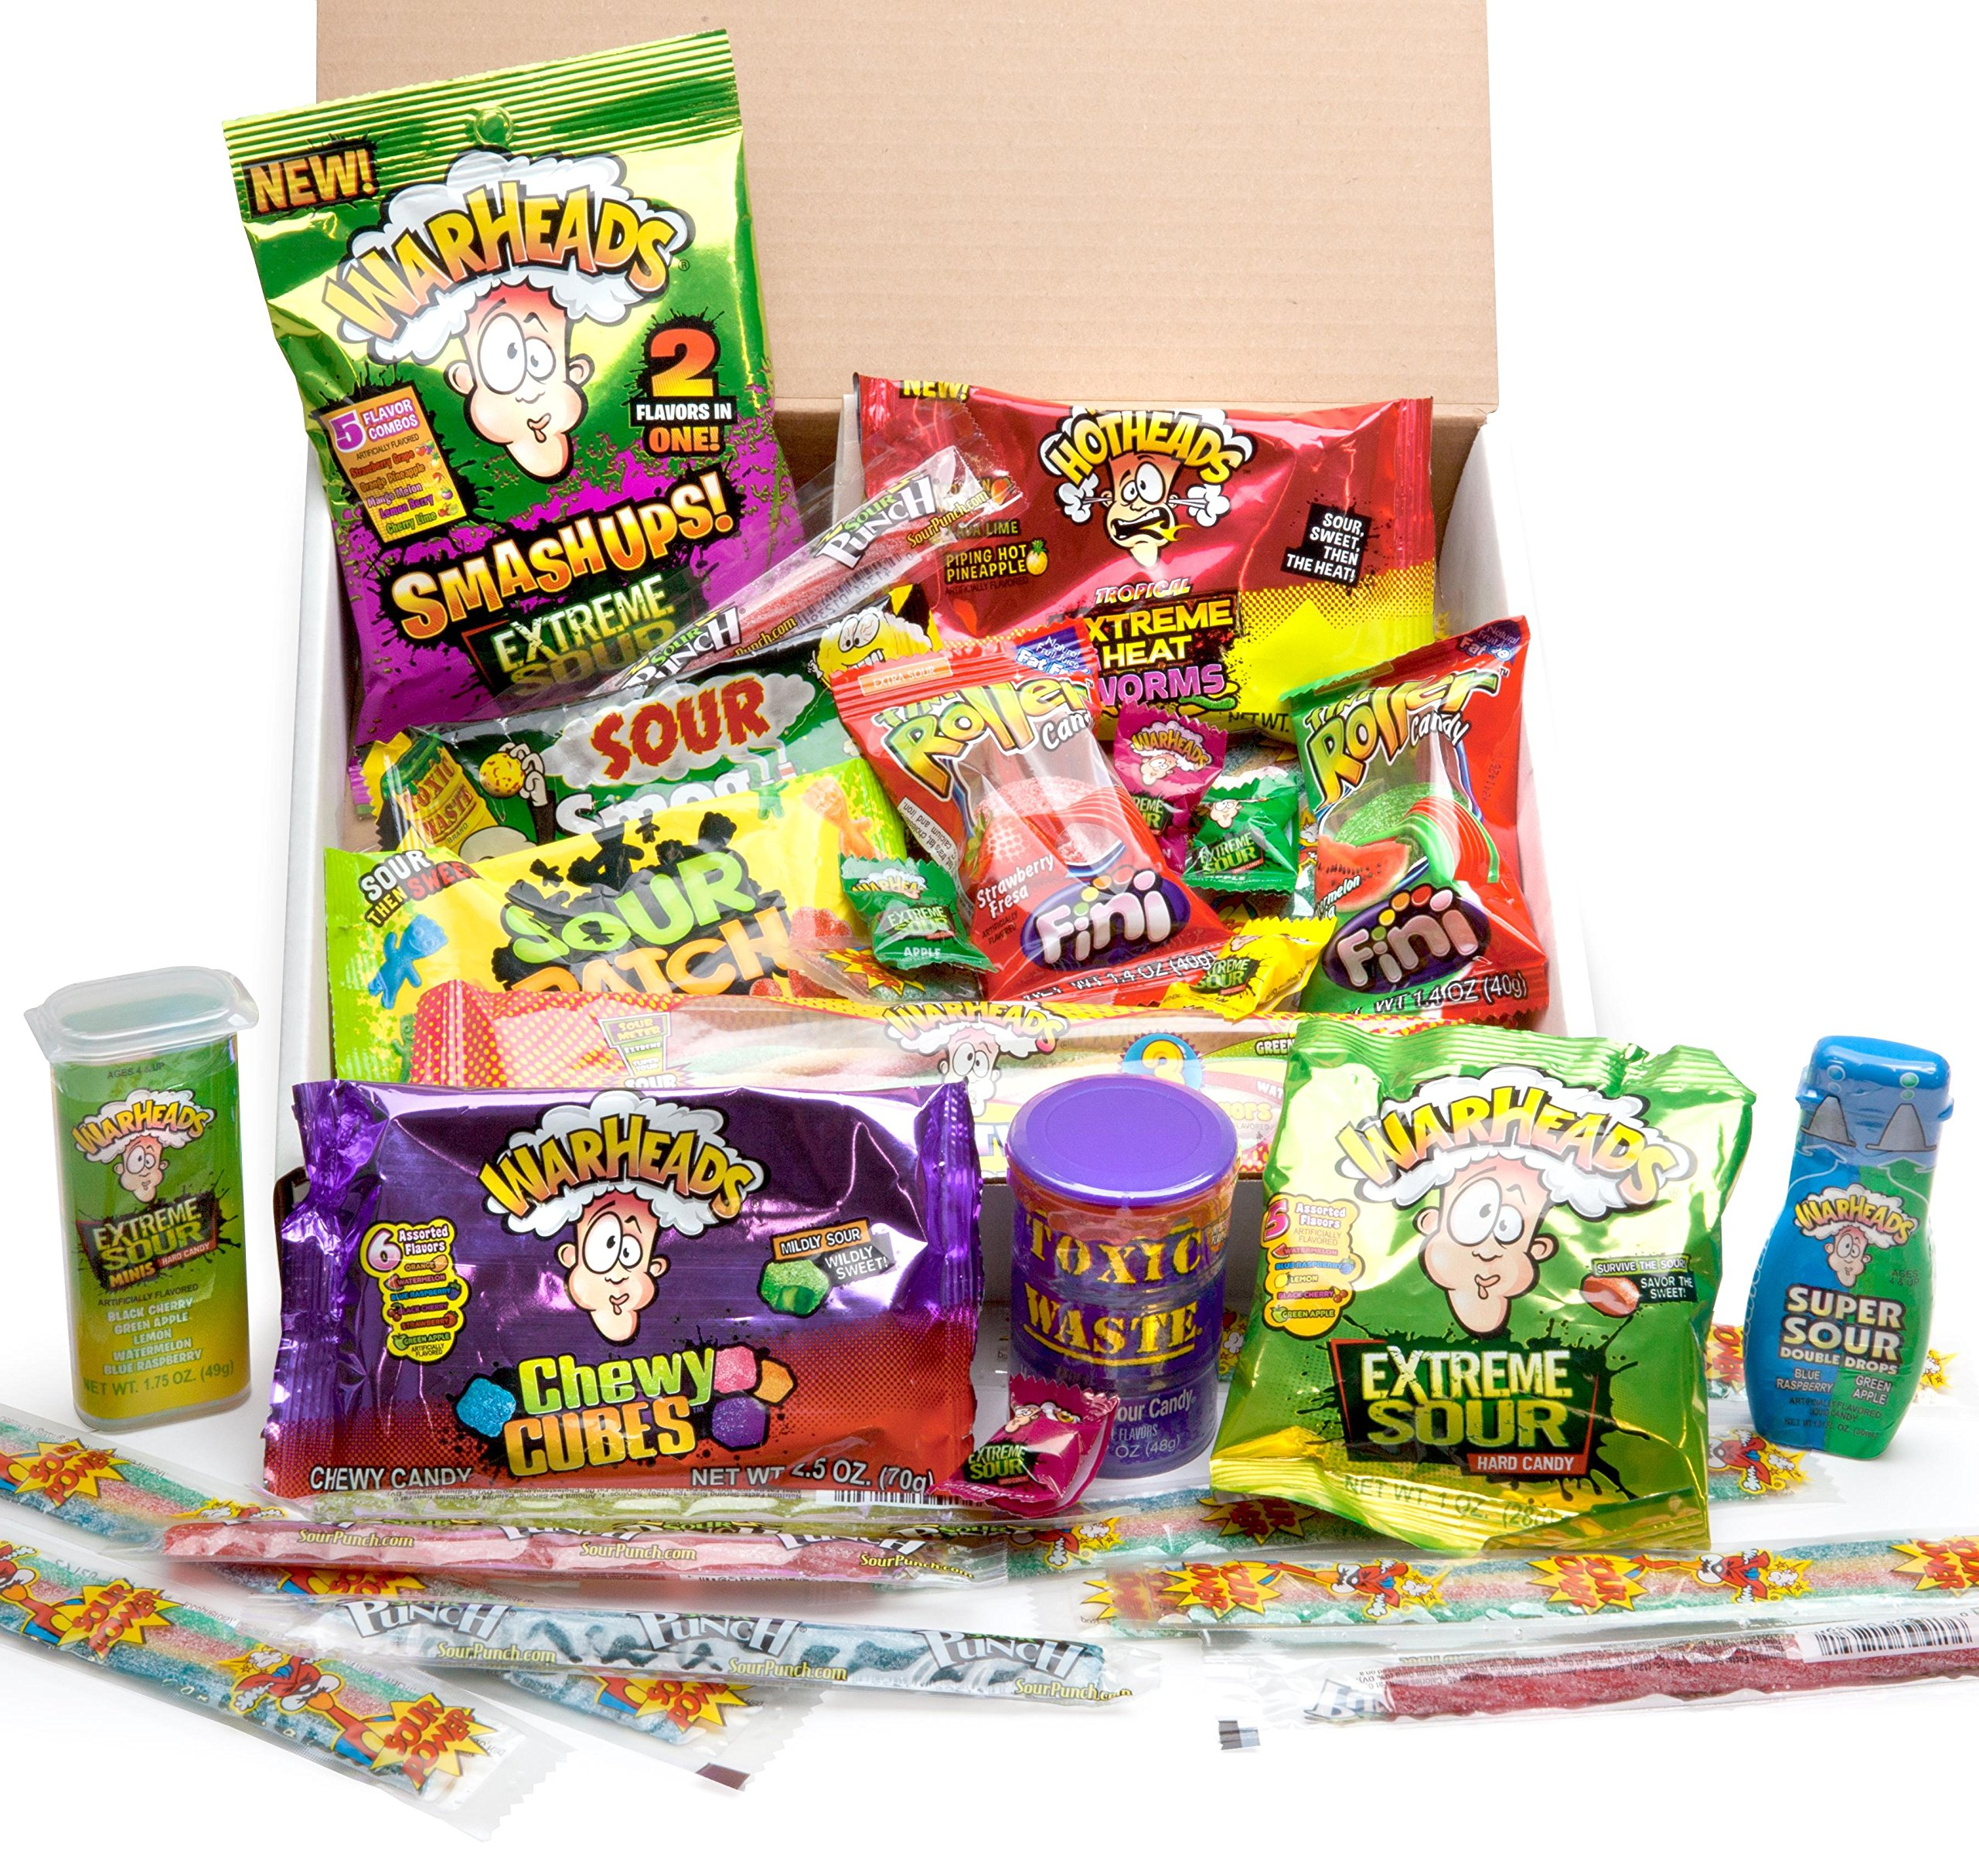 Extreme Sour Candy Assortment - Filled With 42 Individual Packages - Featuring (Warheads, Sour Patch kids, Toxic Waste, Sour Belts, Sour Punch Straws, Liquid Drops & More) Great For All Ages